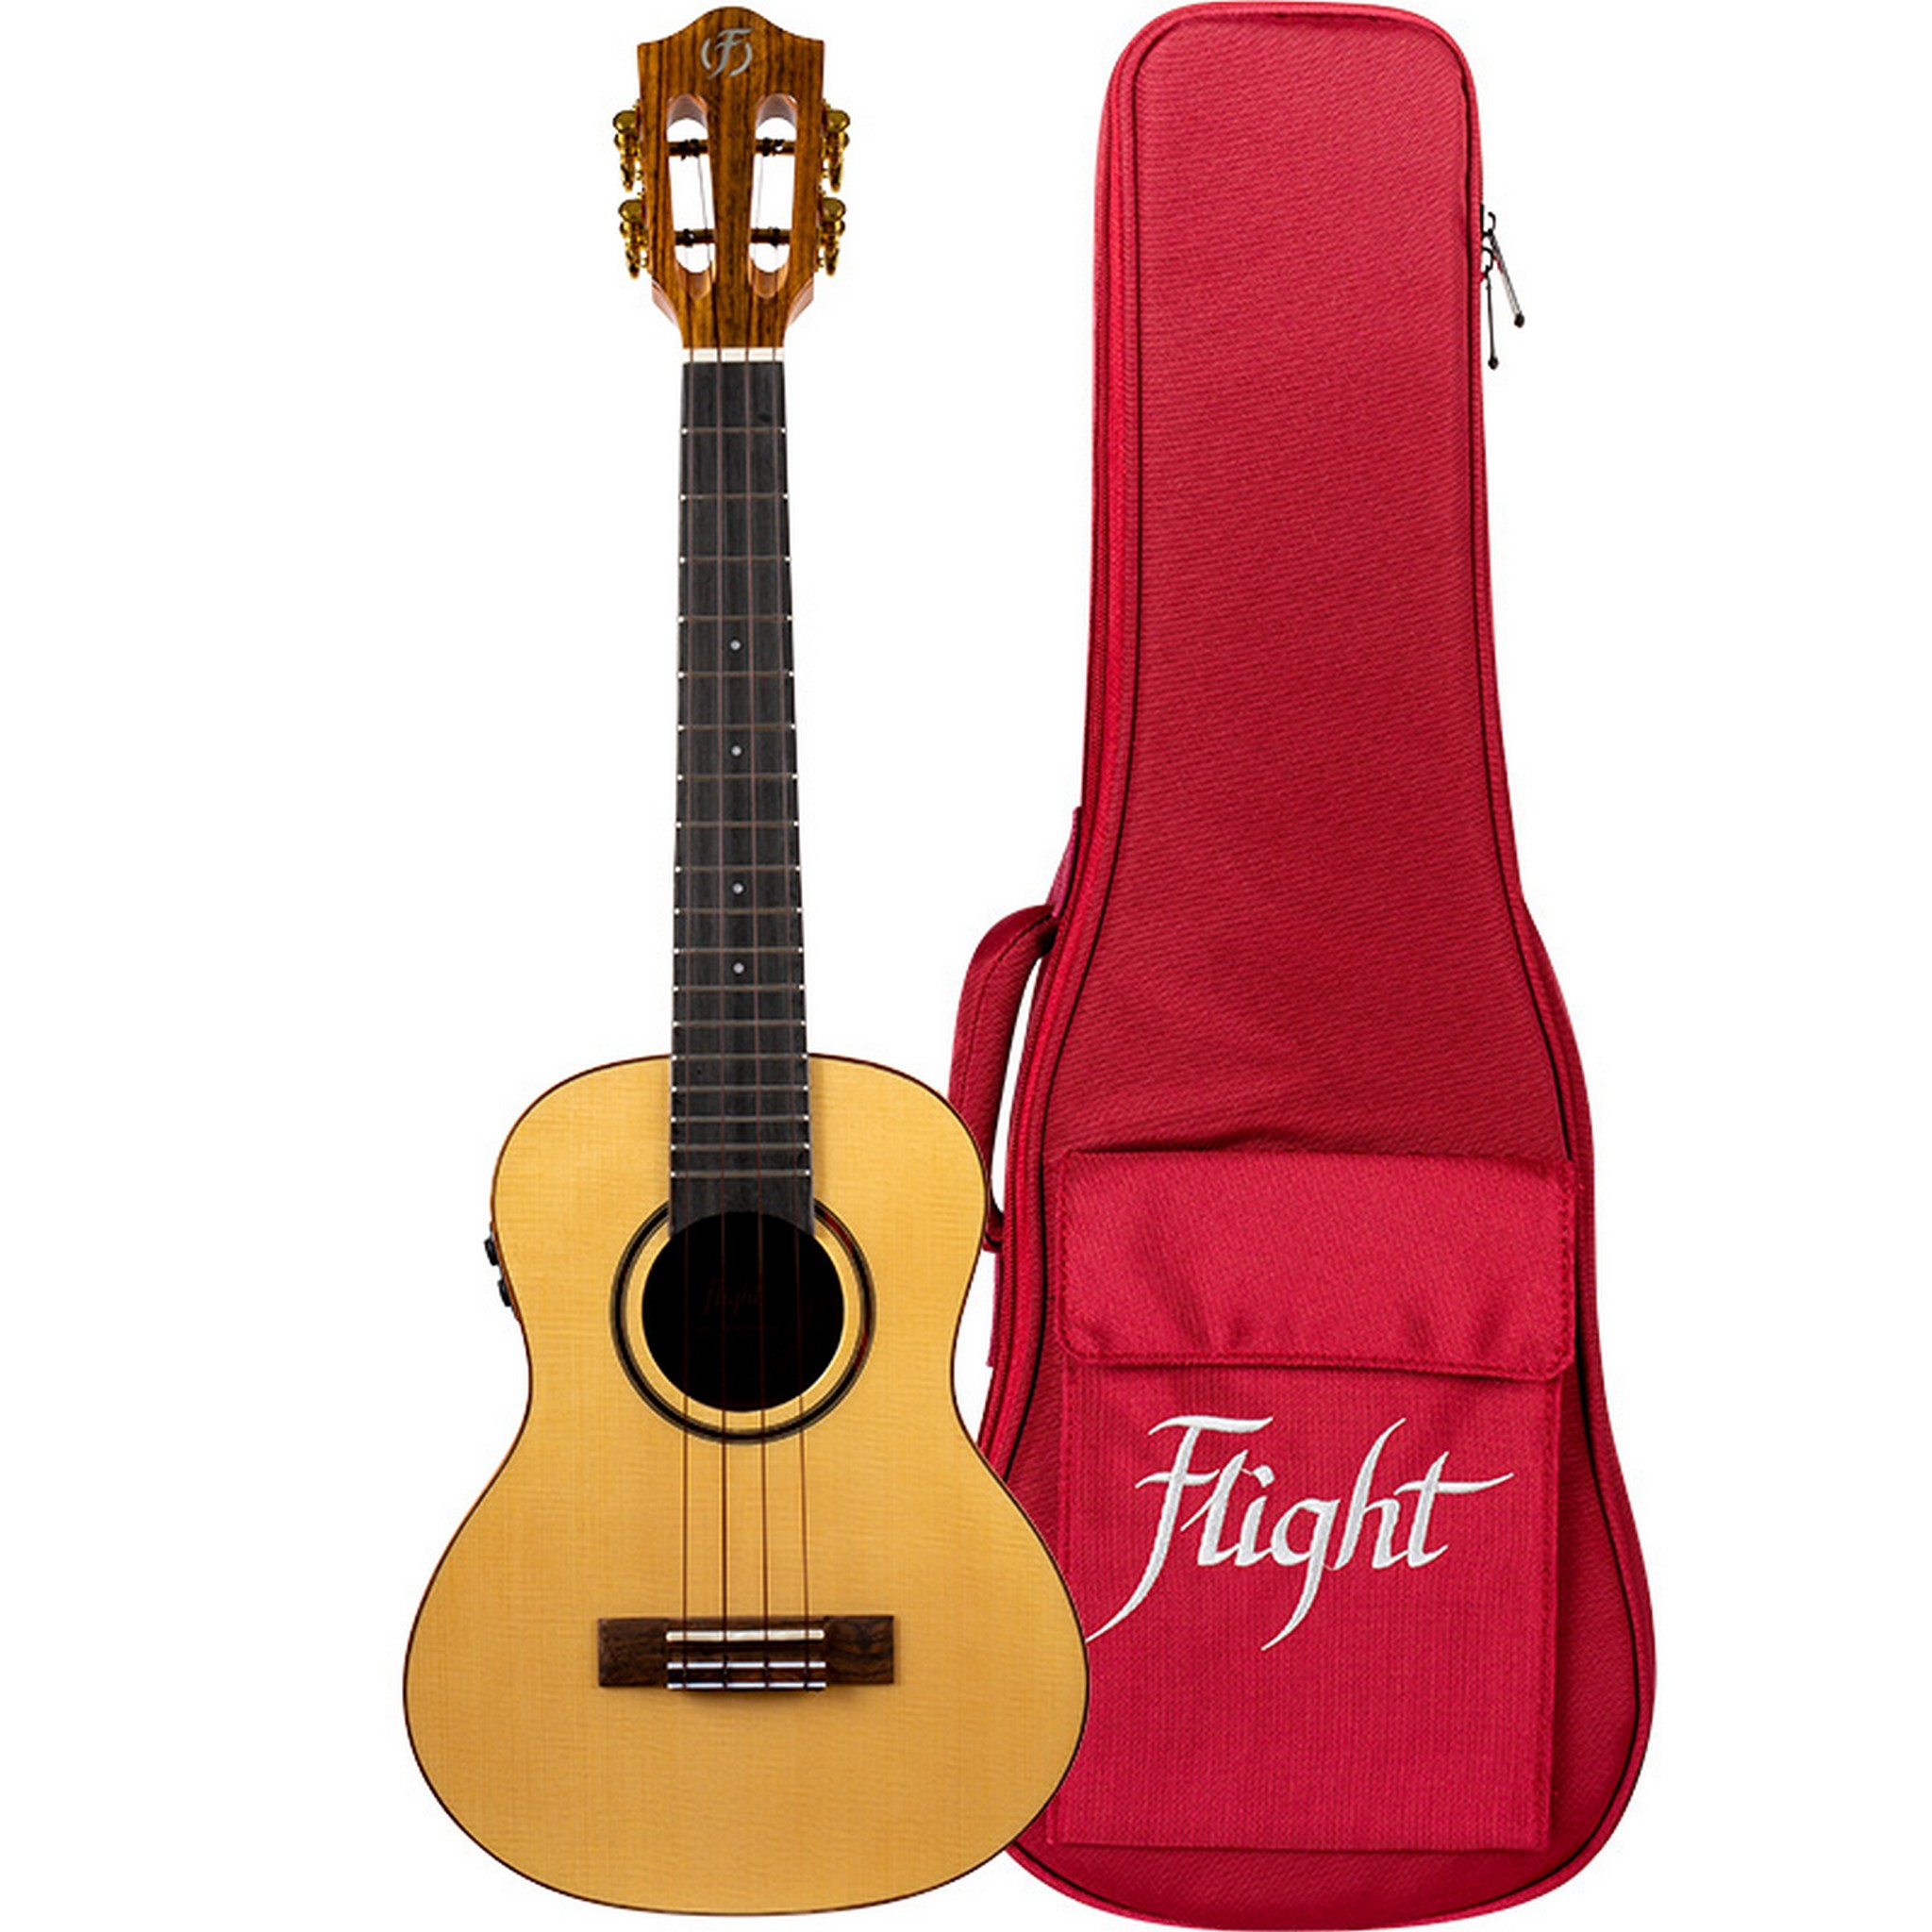 Flight Tenor Ukulele Sophia Soundwave